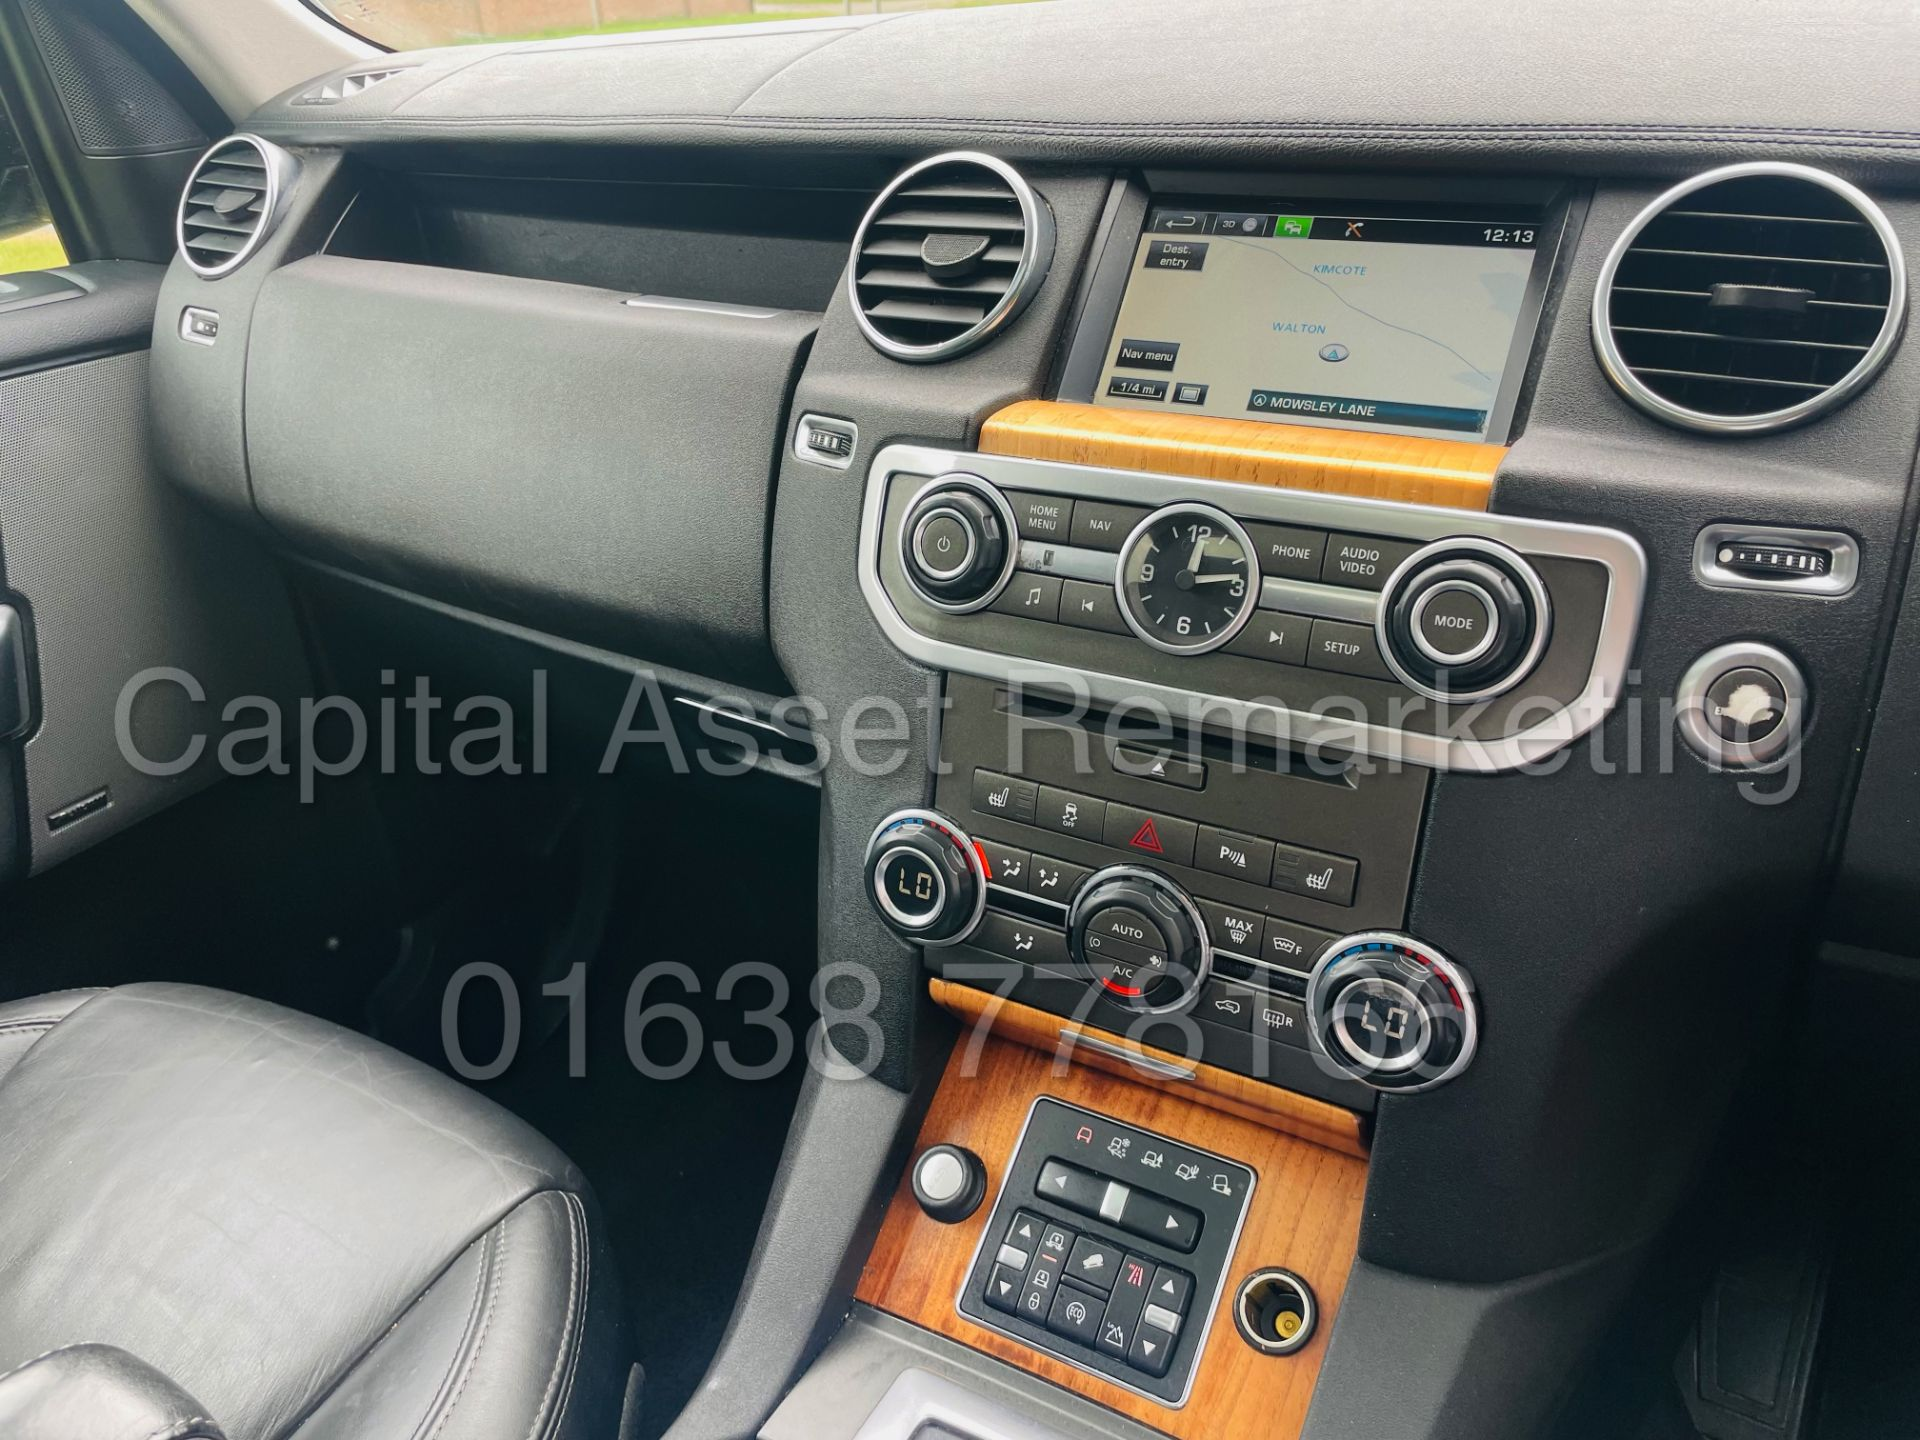 LAND ROVER DISCOVERY 4 *HSE* 7 SEATER SUV (2014 - NEW MODEL) '3.0 SDV6 - 255 BHP - 8 SPEED AUTO' - Image 52 of 61